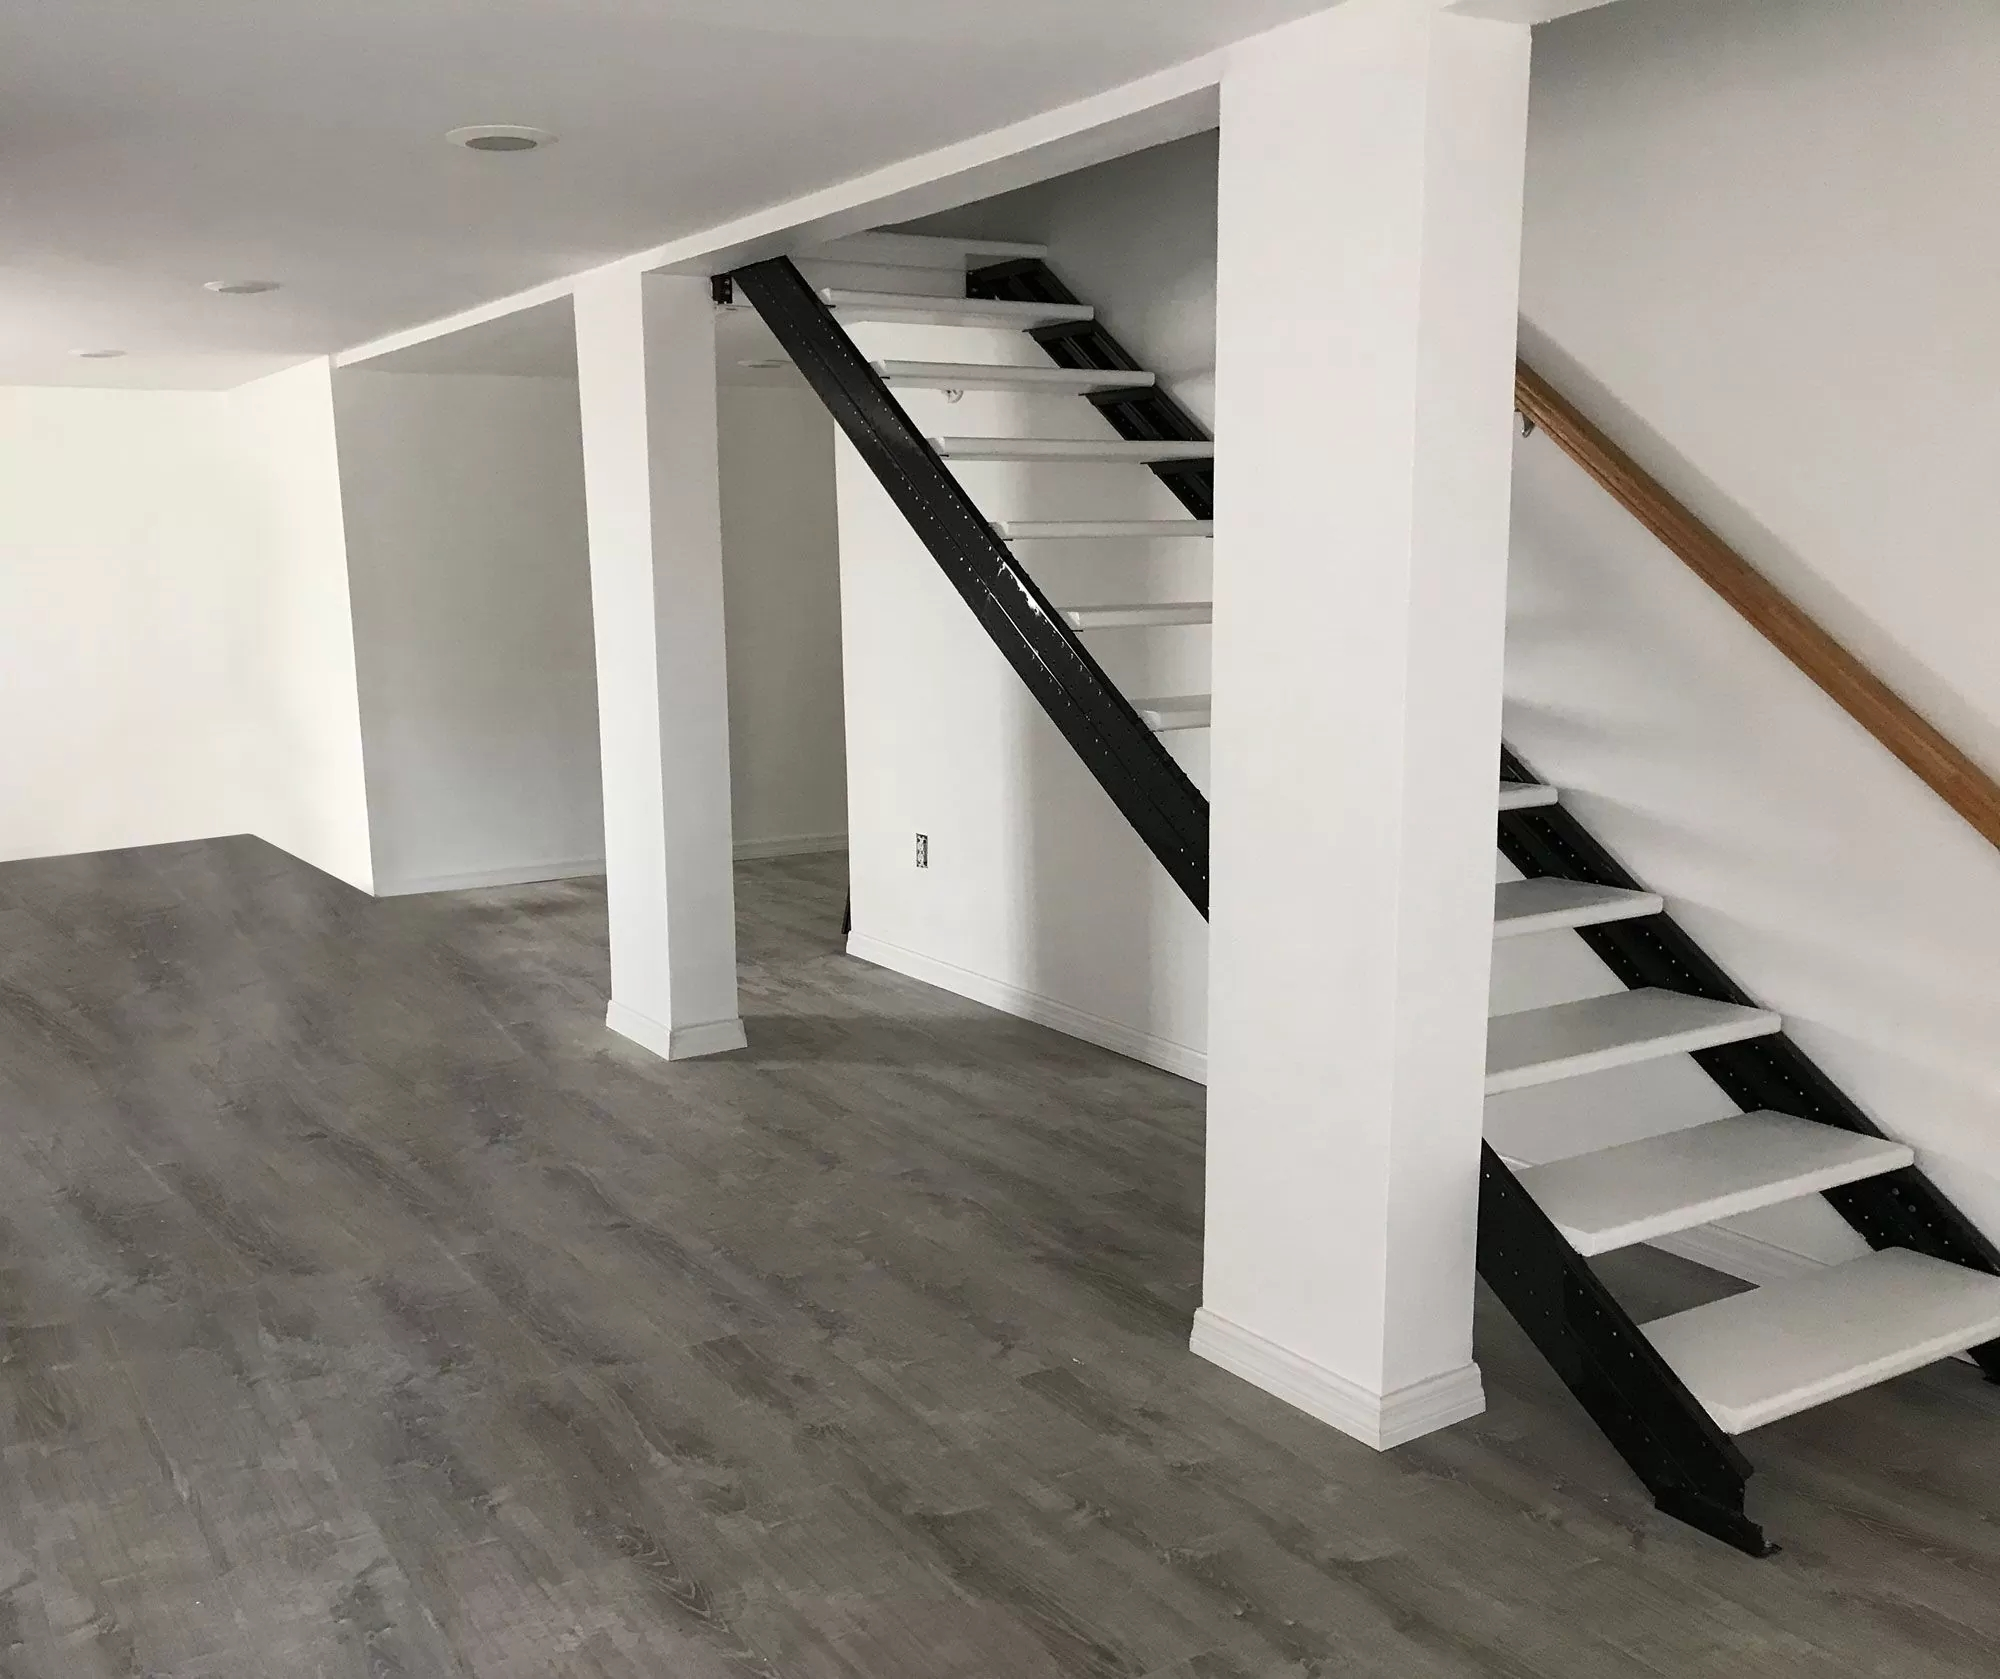 Basement Stair Stringers By Fast Stairs Com   Opening Up Staircase To Basement   Kitchen   Basement Remodel   Banister   Stairwell   Man Cave